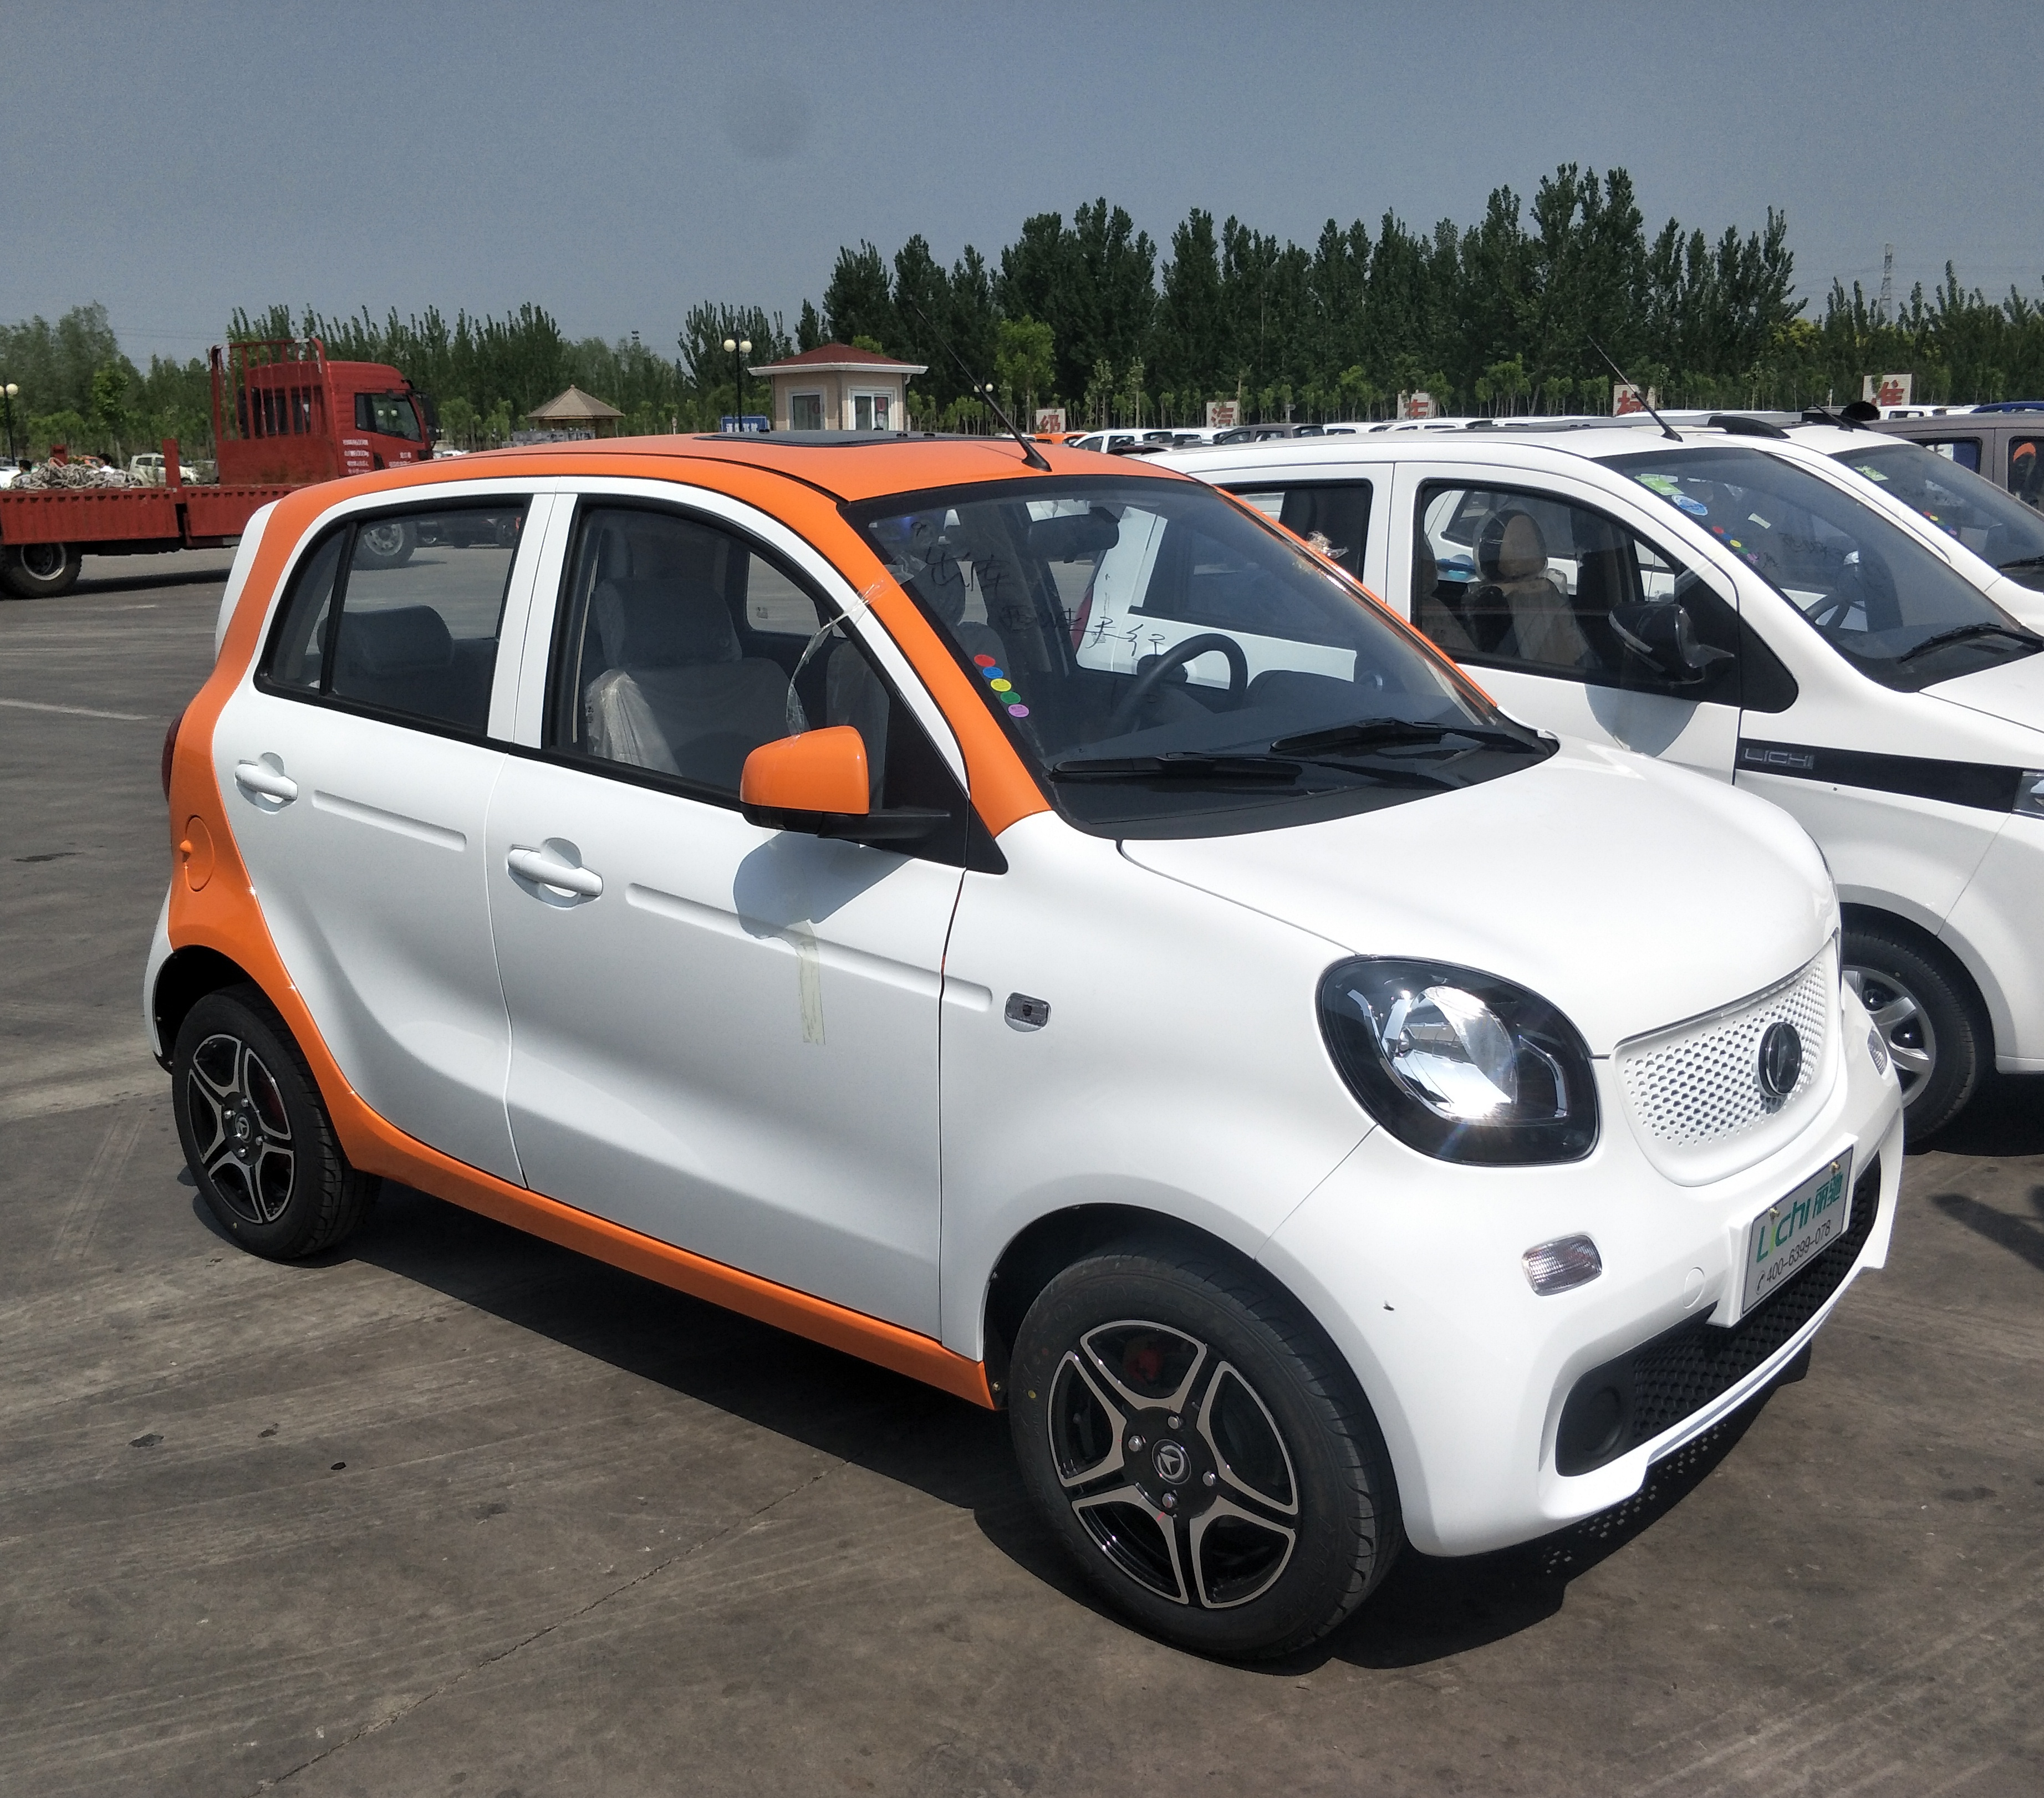 Fashionable 4 Seats Smart New Energy Electric Car With 5 6kw Motor Good For Taxi And Family Use